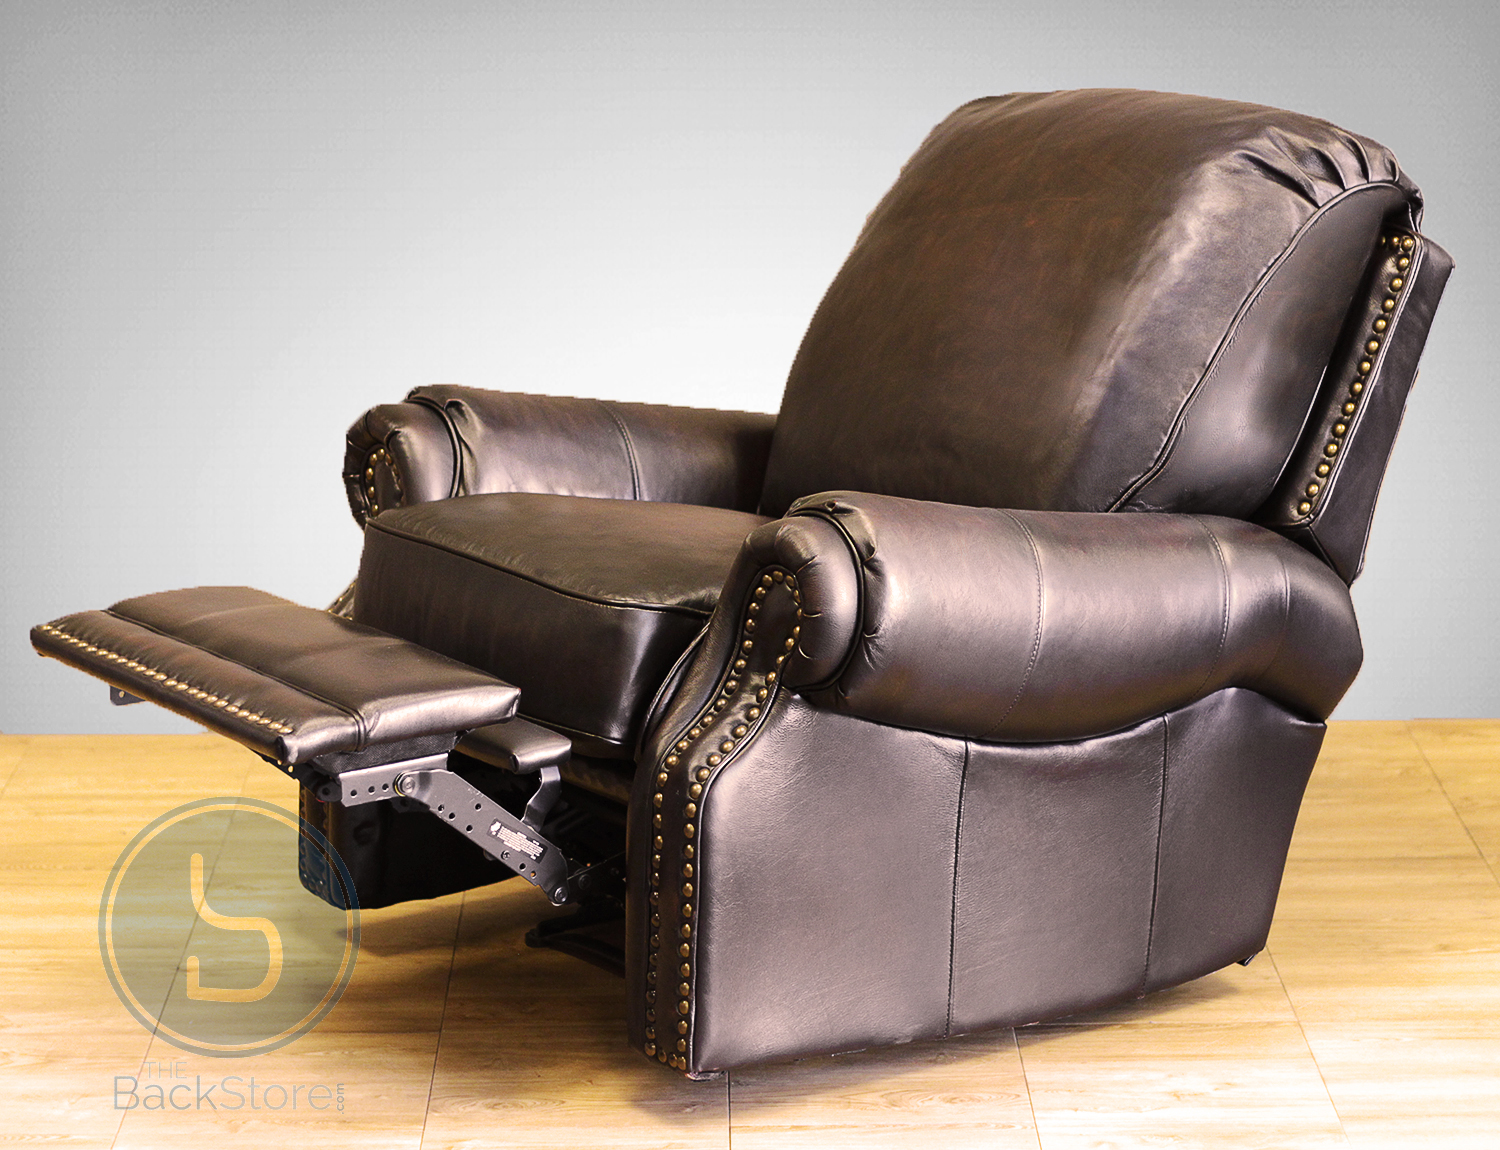 Barcalounger Premier II Recliner Chair Chaps Saddle Leather & Barcalounger Premier II Leather Recliner Chair - Leather Recliner ... islam-shia.org